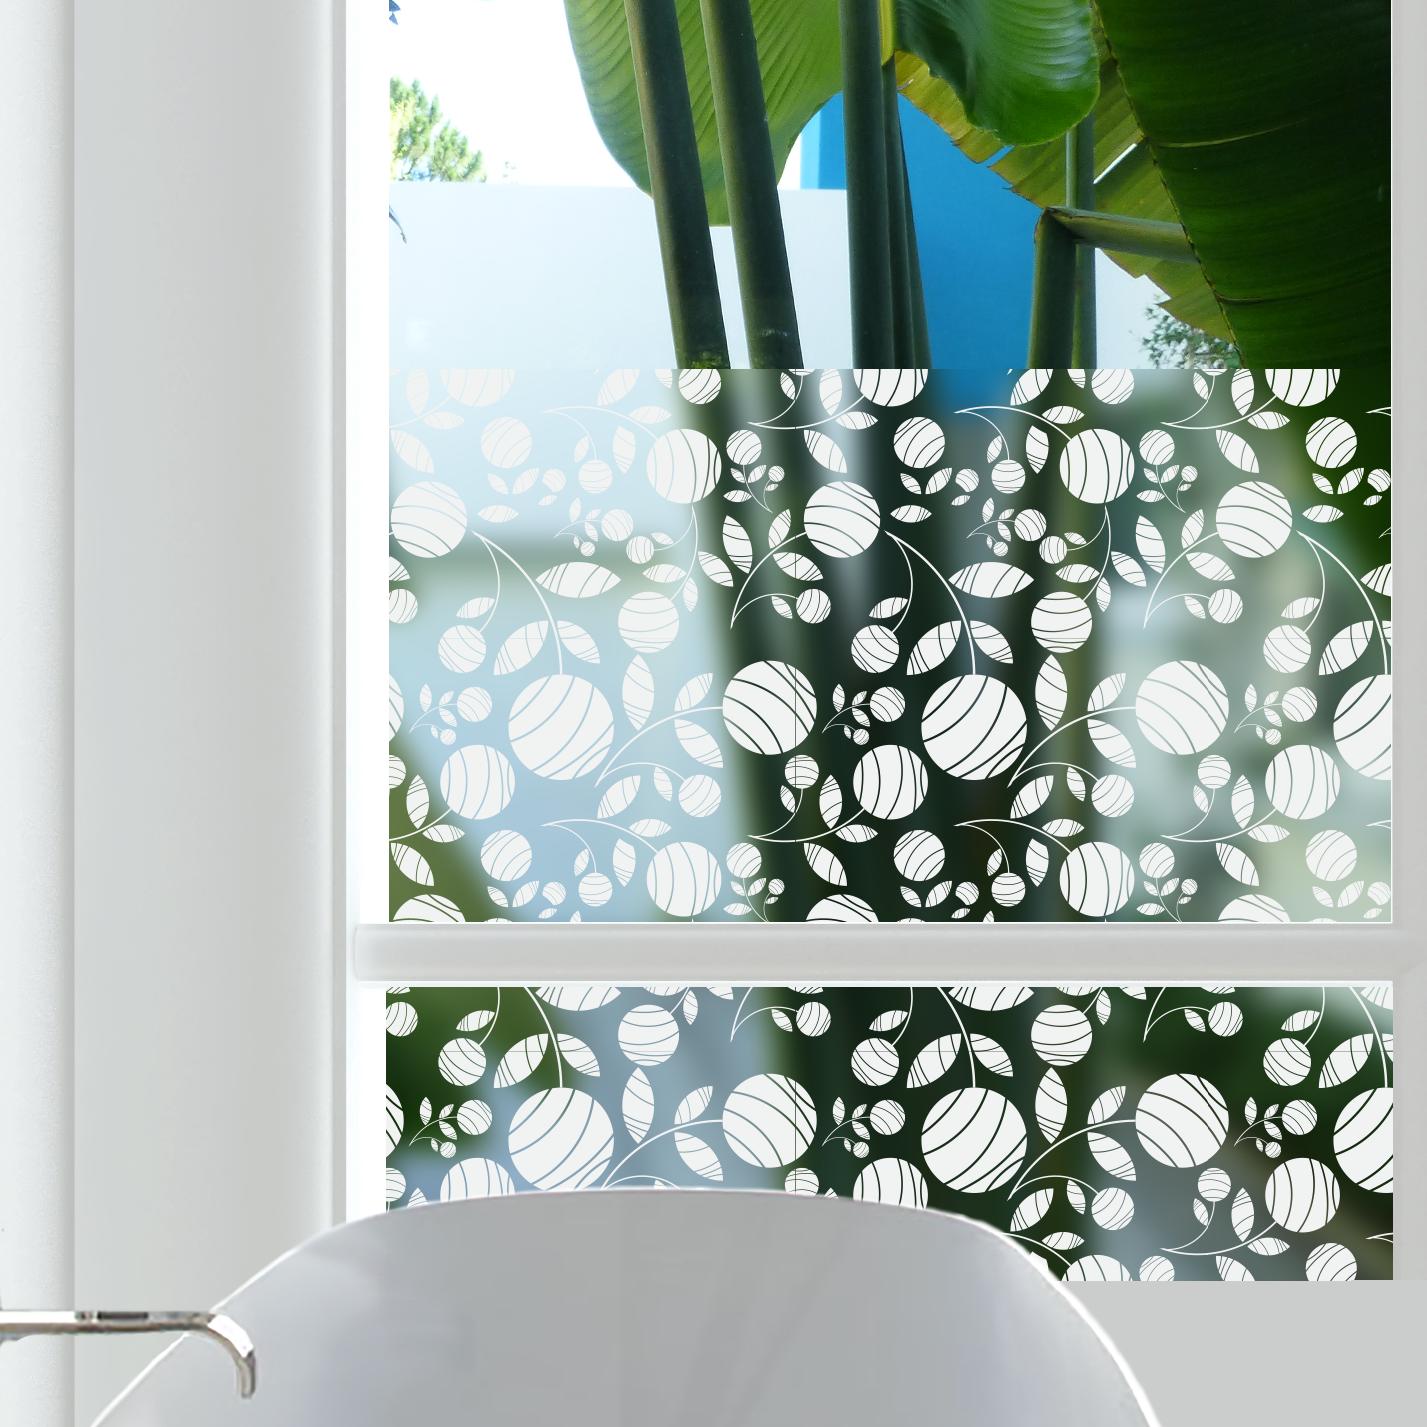 Conservatory Window Film Can Significantly Reduce The Amount Of Heat Entering Your Conservatory In Summer It Also Helps To Reduce Annoy Window Film Windows Conservatory